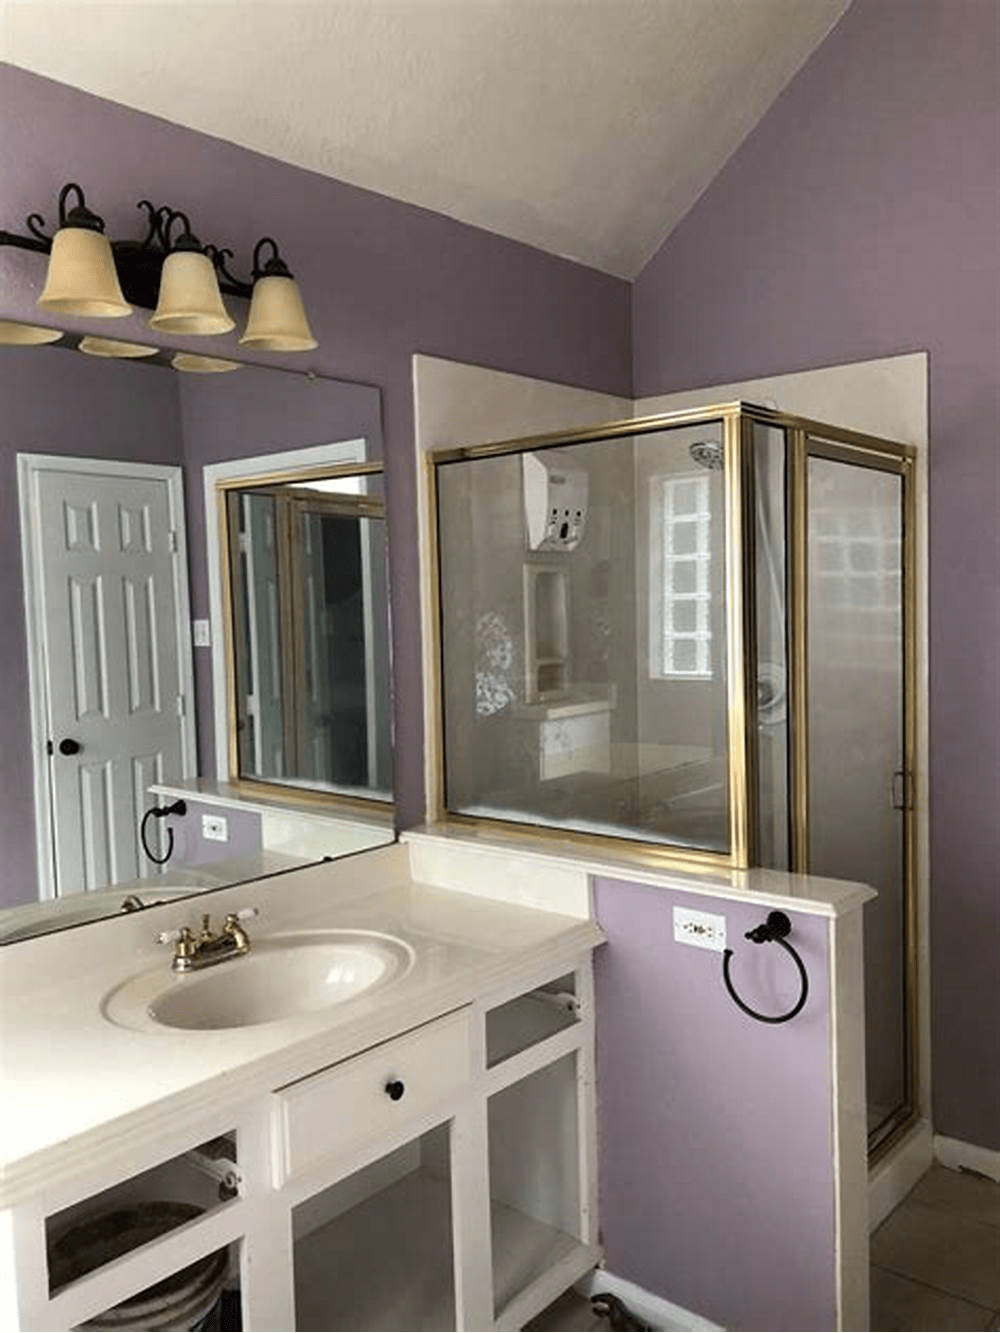 54 Best Way Before You Remodel Your Bathroom In 2020 Bathrooms Remodel Budget Bathroom Remodel Bathroom Layout